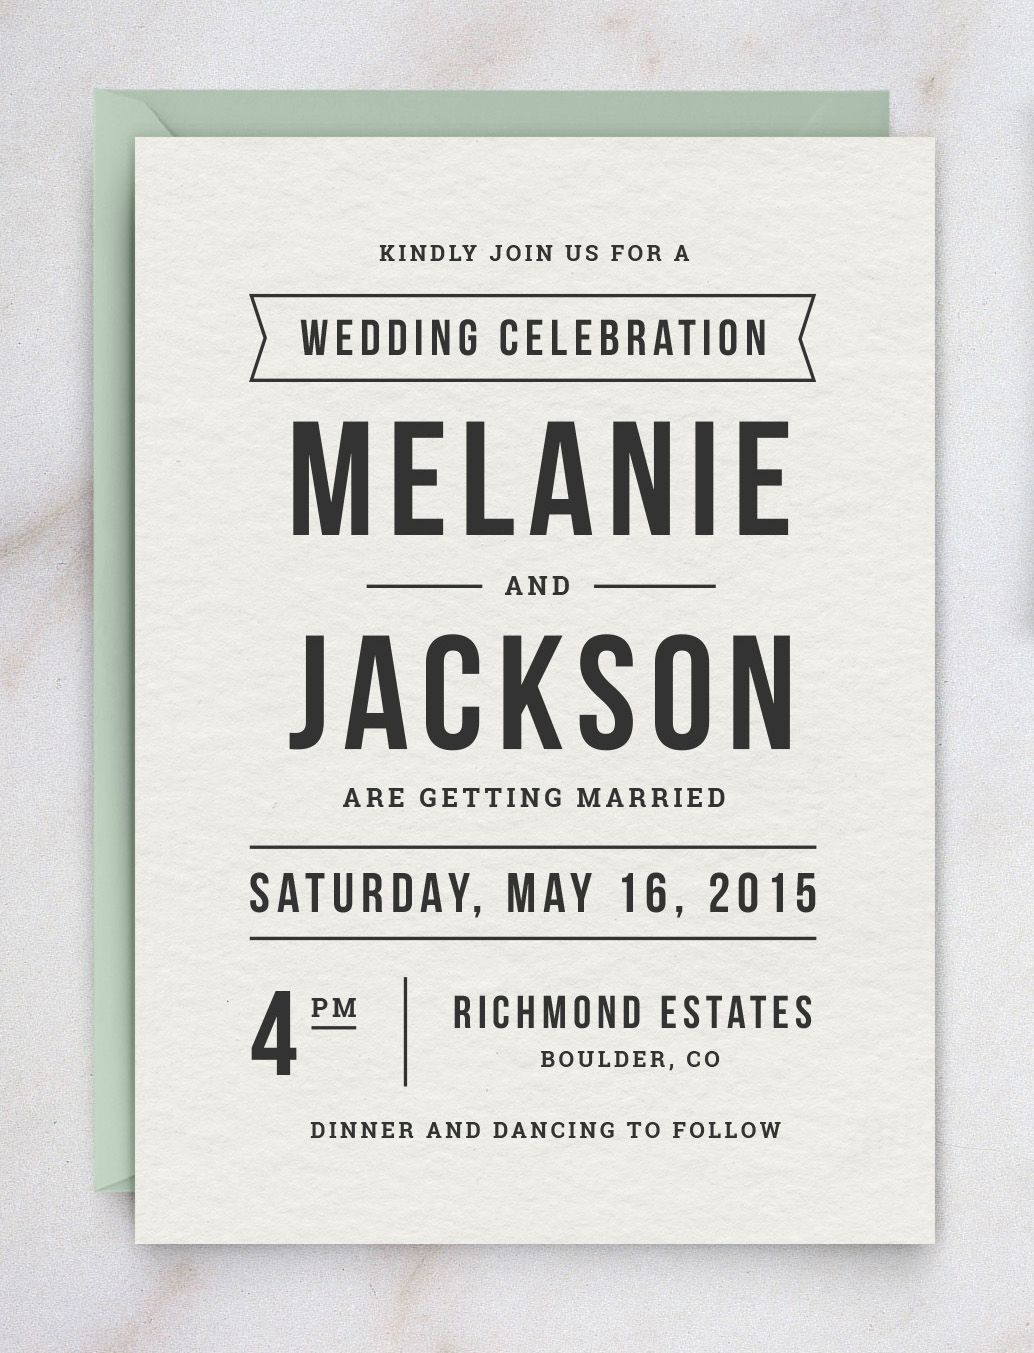 DIY wedding invitations: Get this elegant invitation template with ...